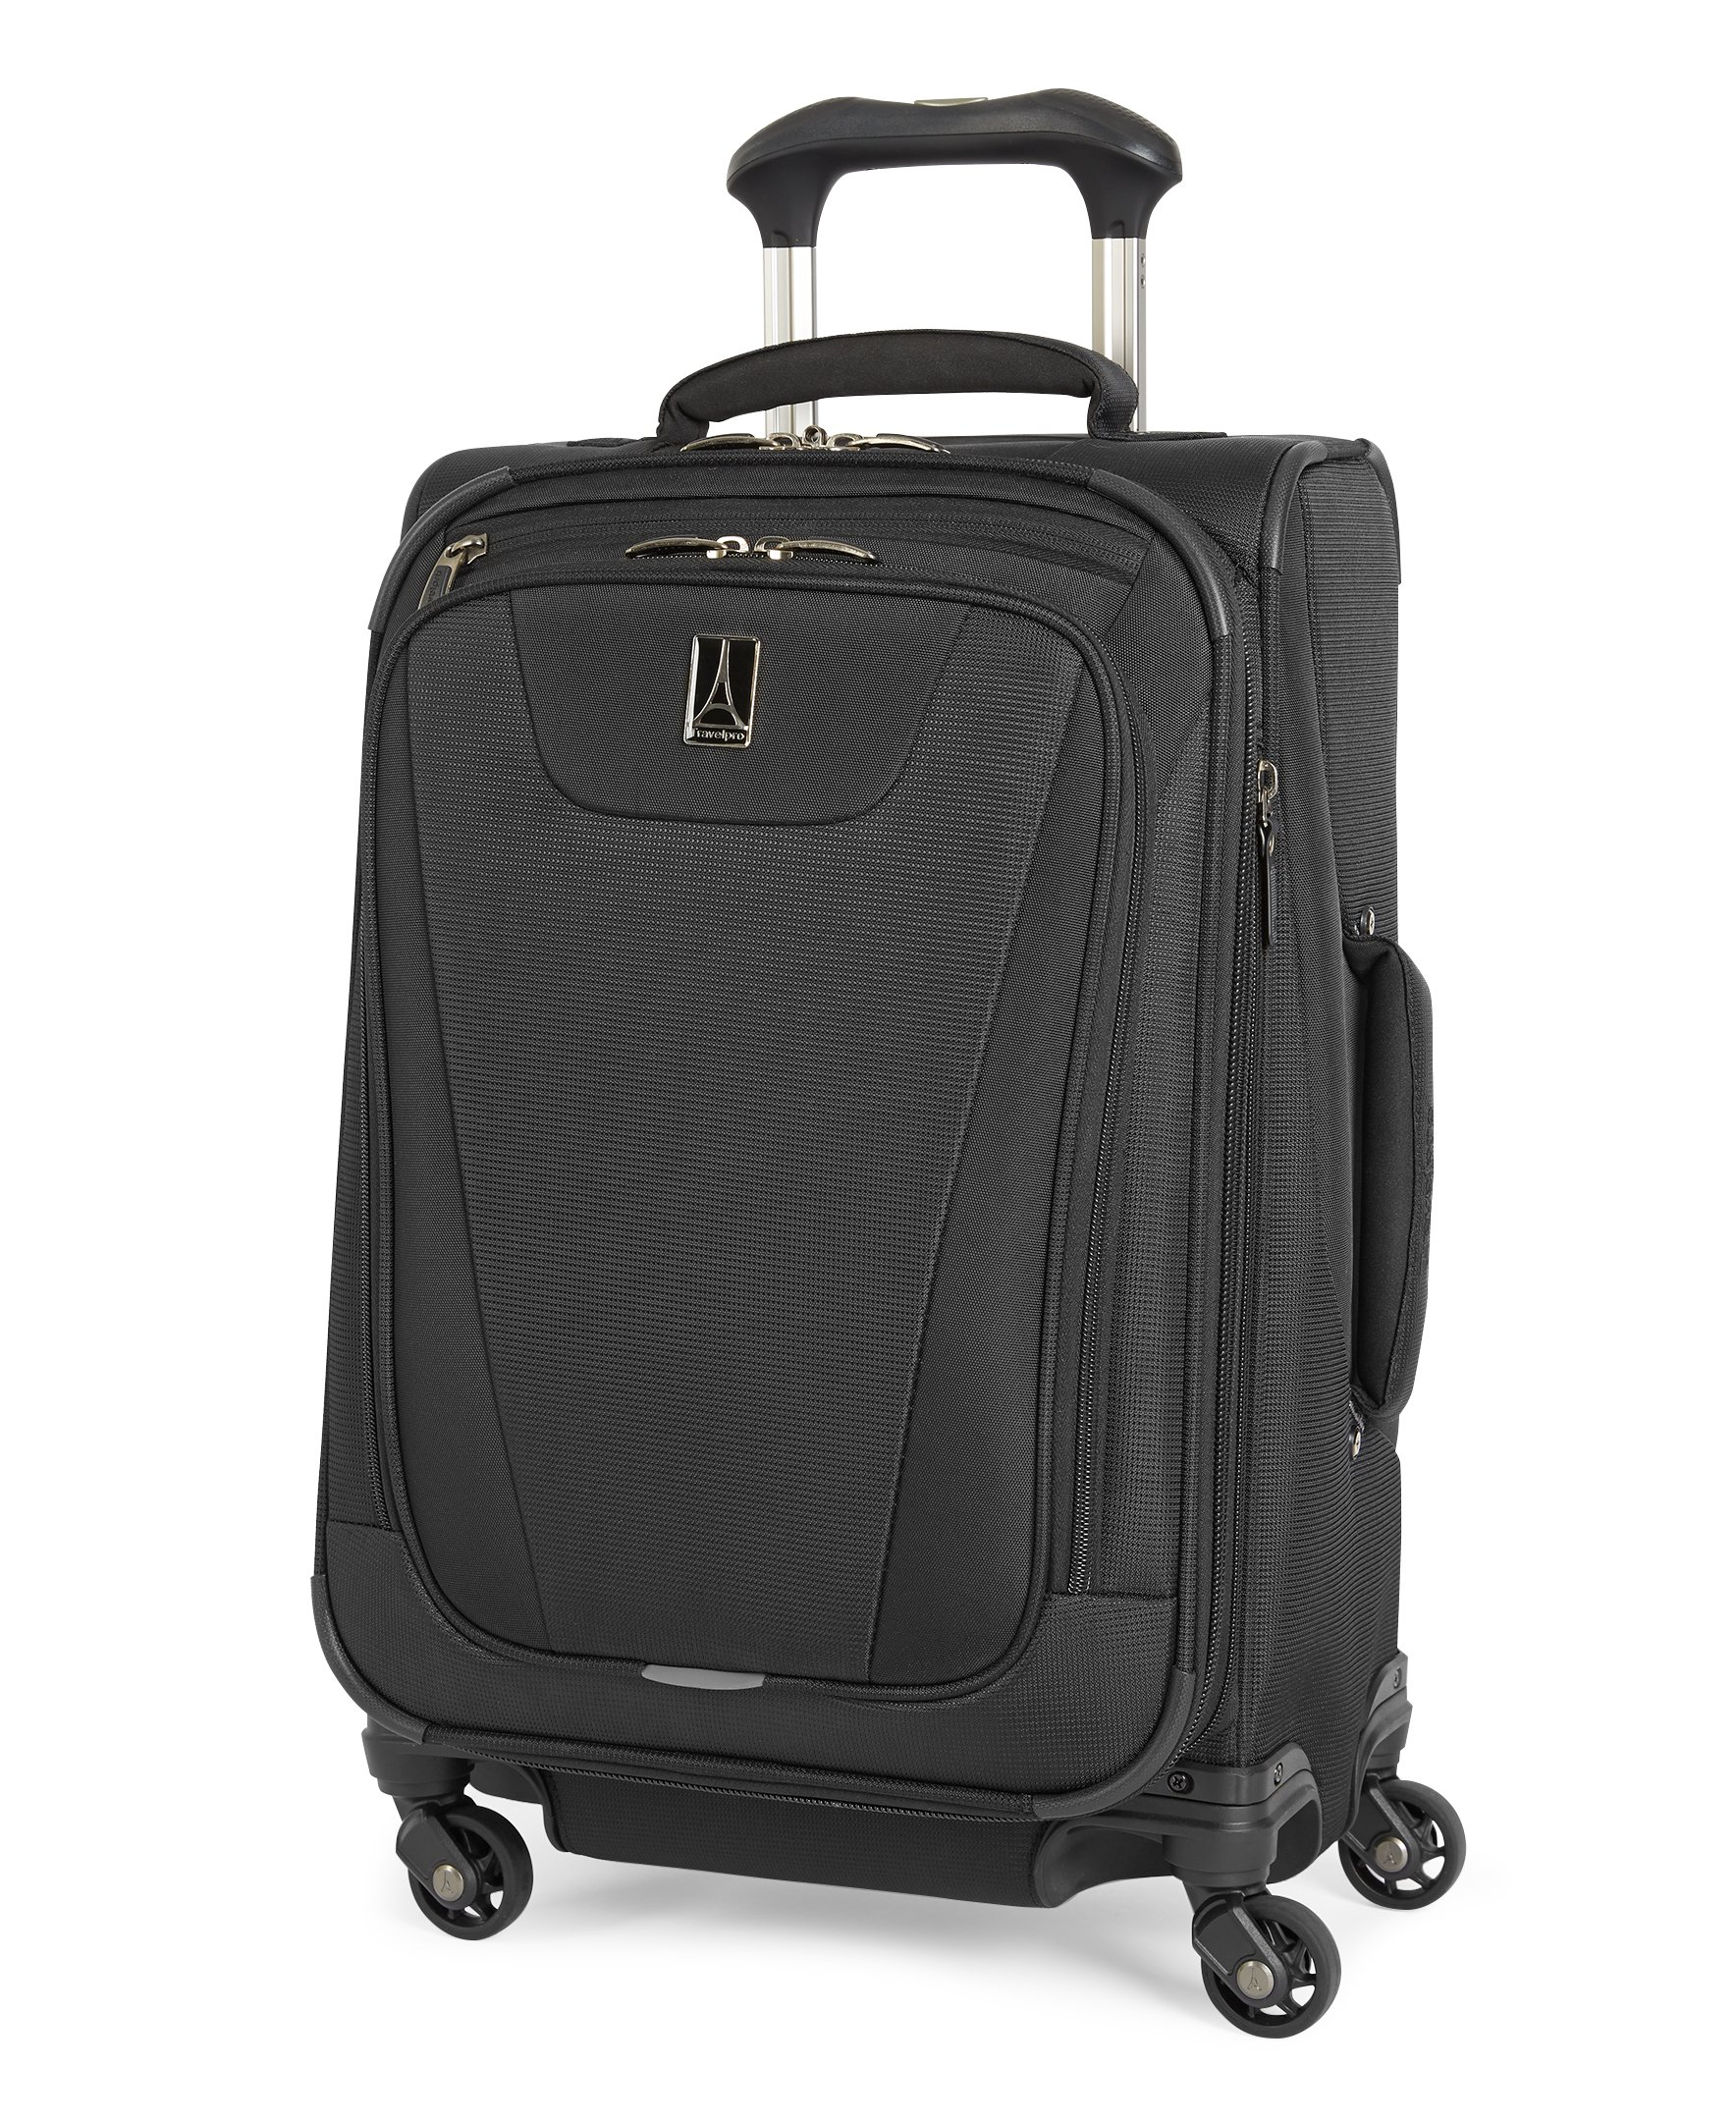 Travelpro Maxlite 4 Expandable 21 Inch Spinner Suitcase, Black by Travelpro